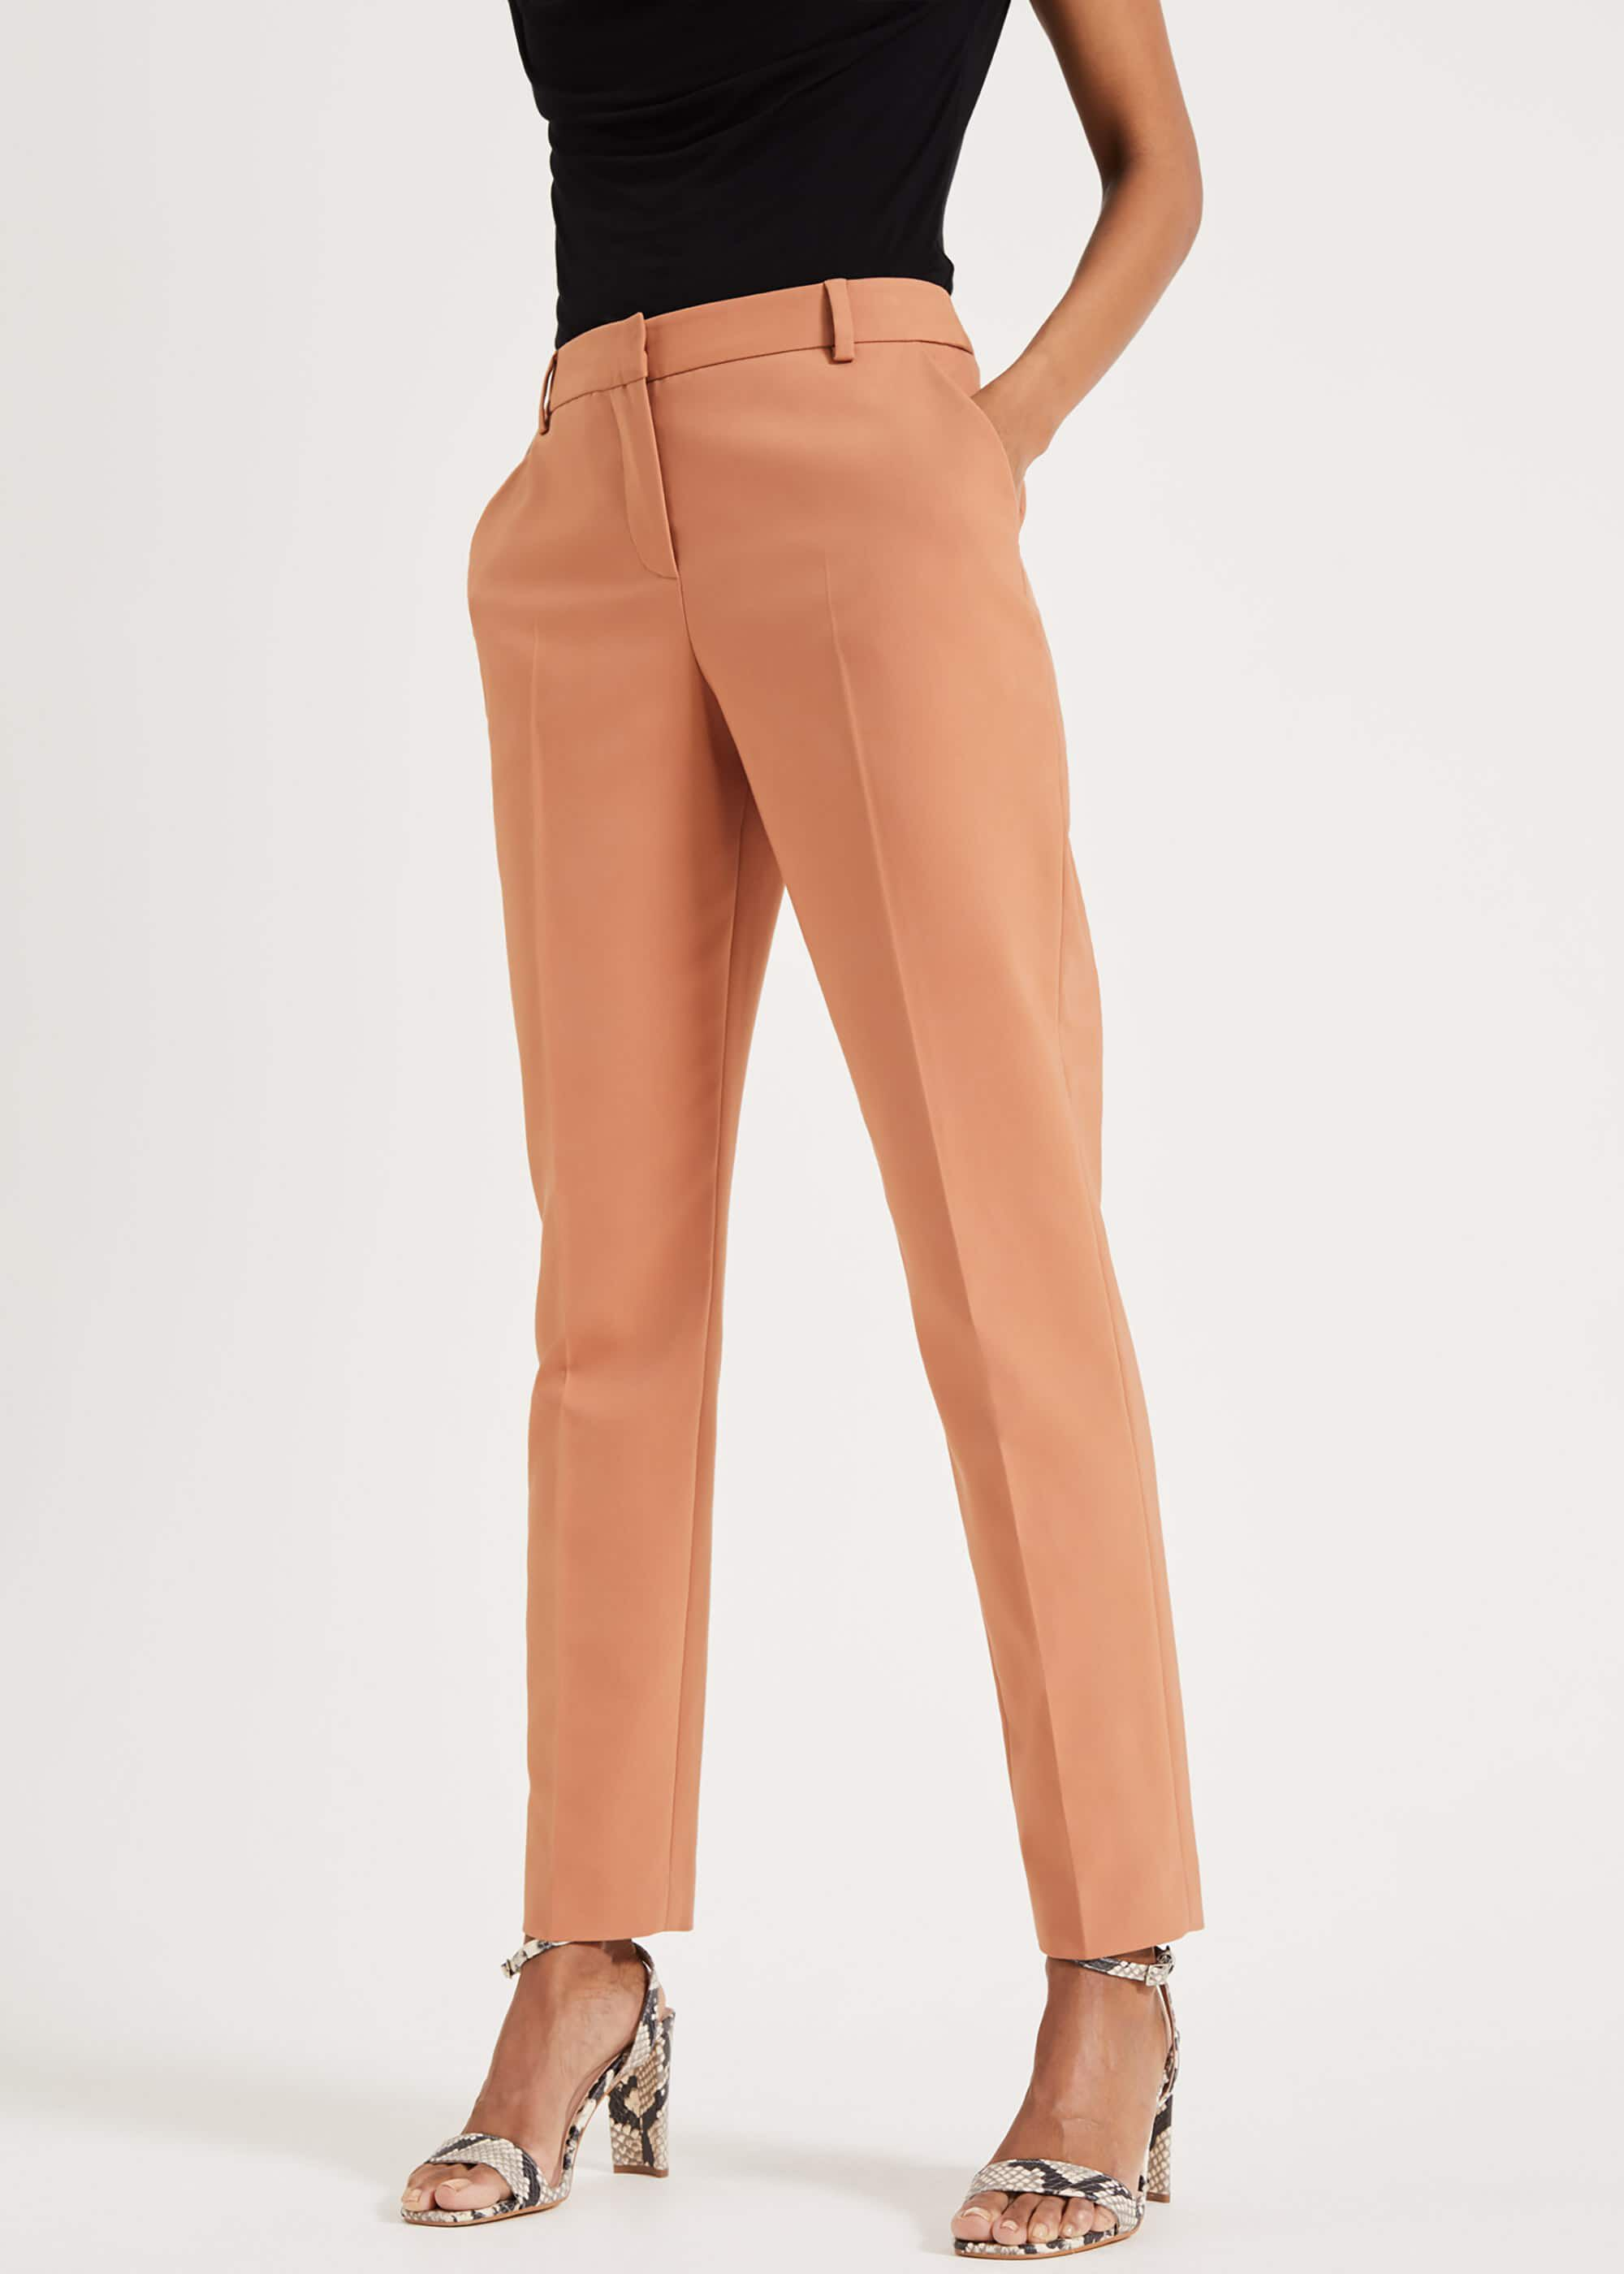 Phase Eight Women's Bronwen Tapered Trousers, Brown, Tapered